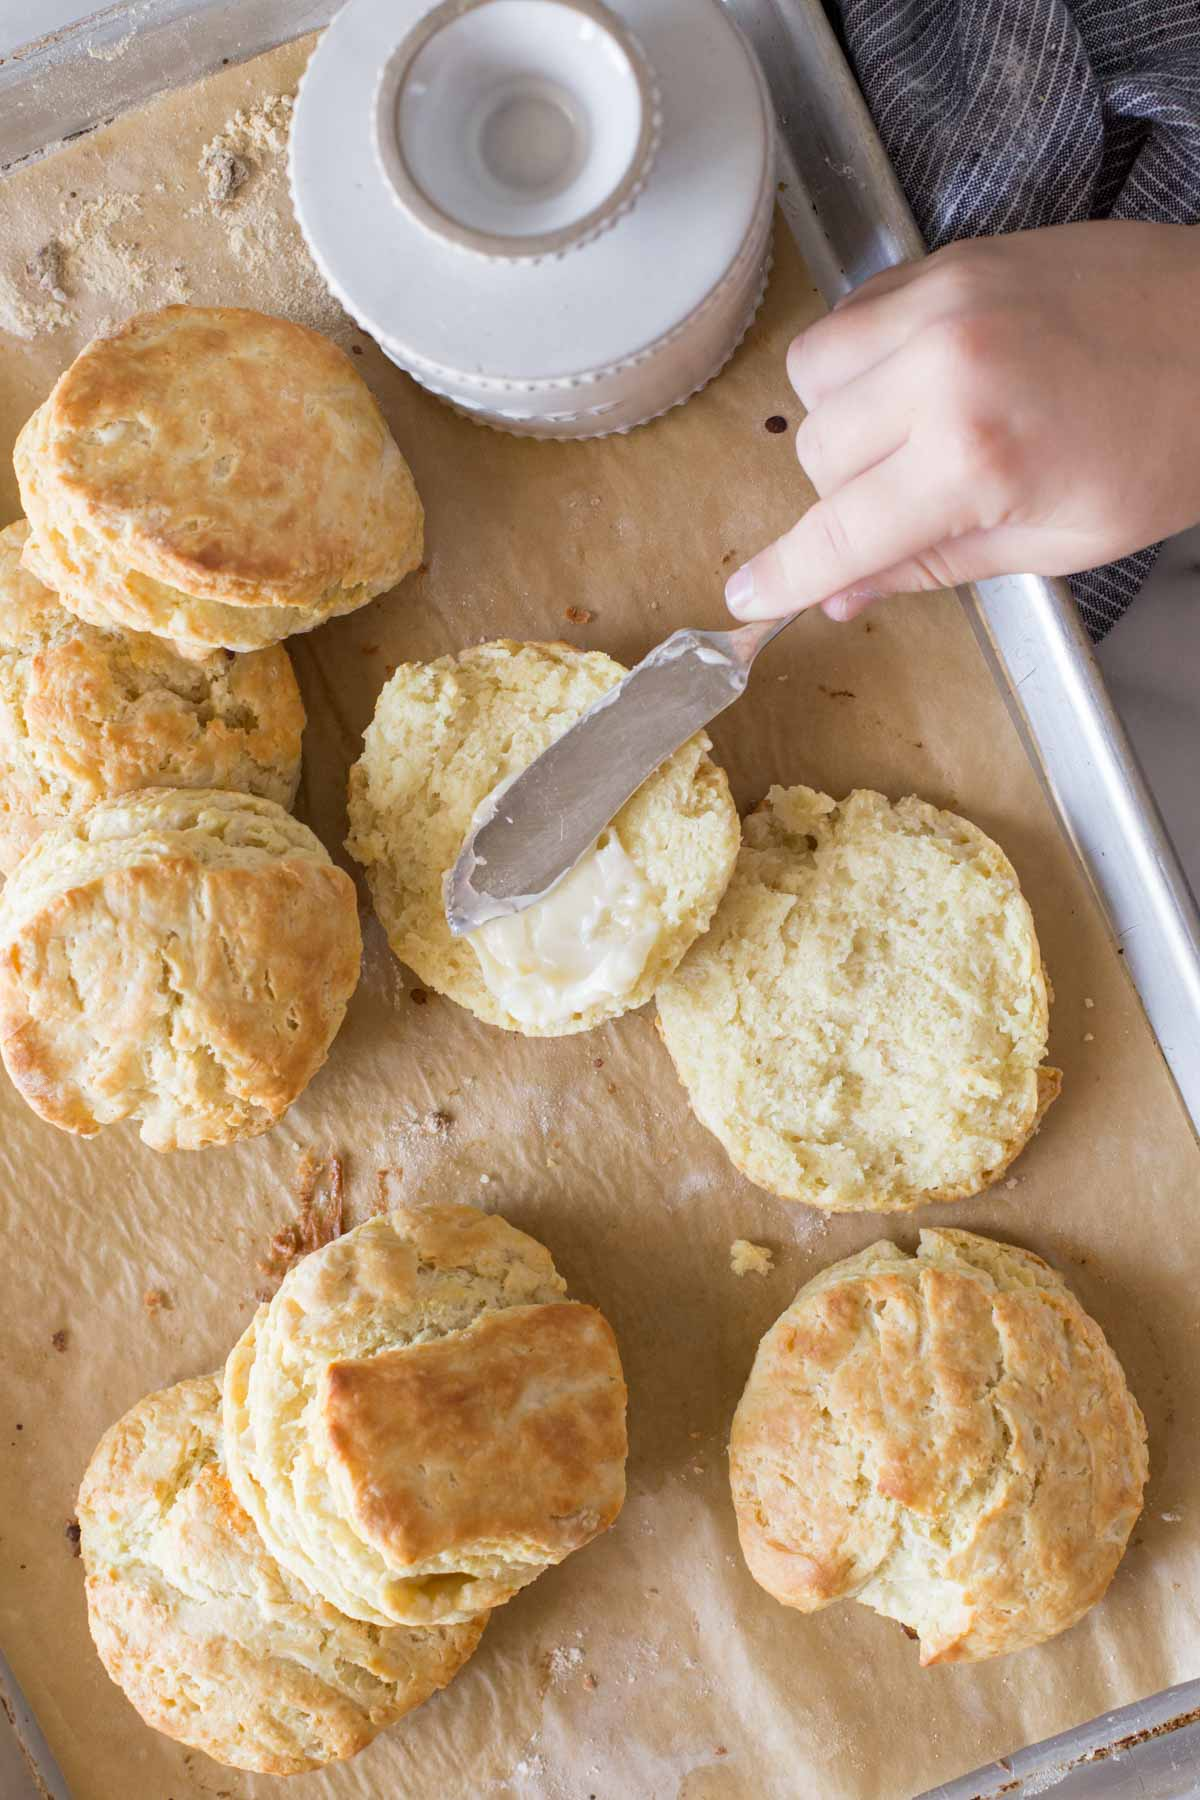 Overhead shot of Easy Homemade Biscuits and a butter dish on a parchment lined baking sheet, with a hand spreading butter on an open biscuit.